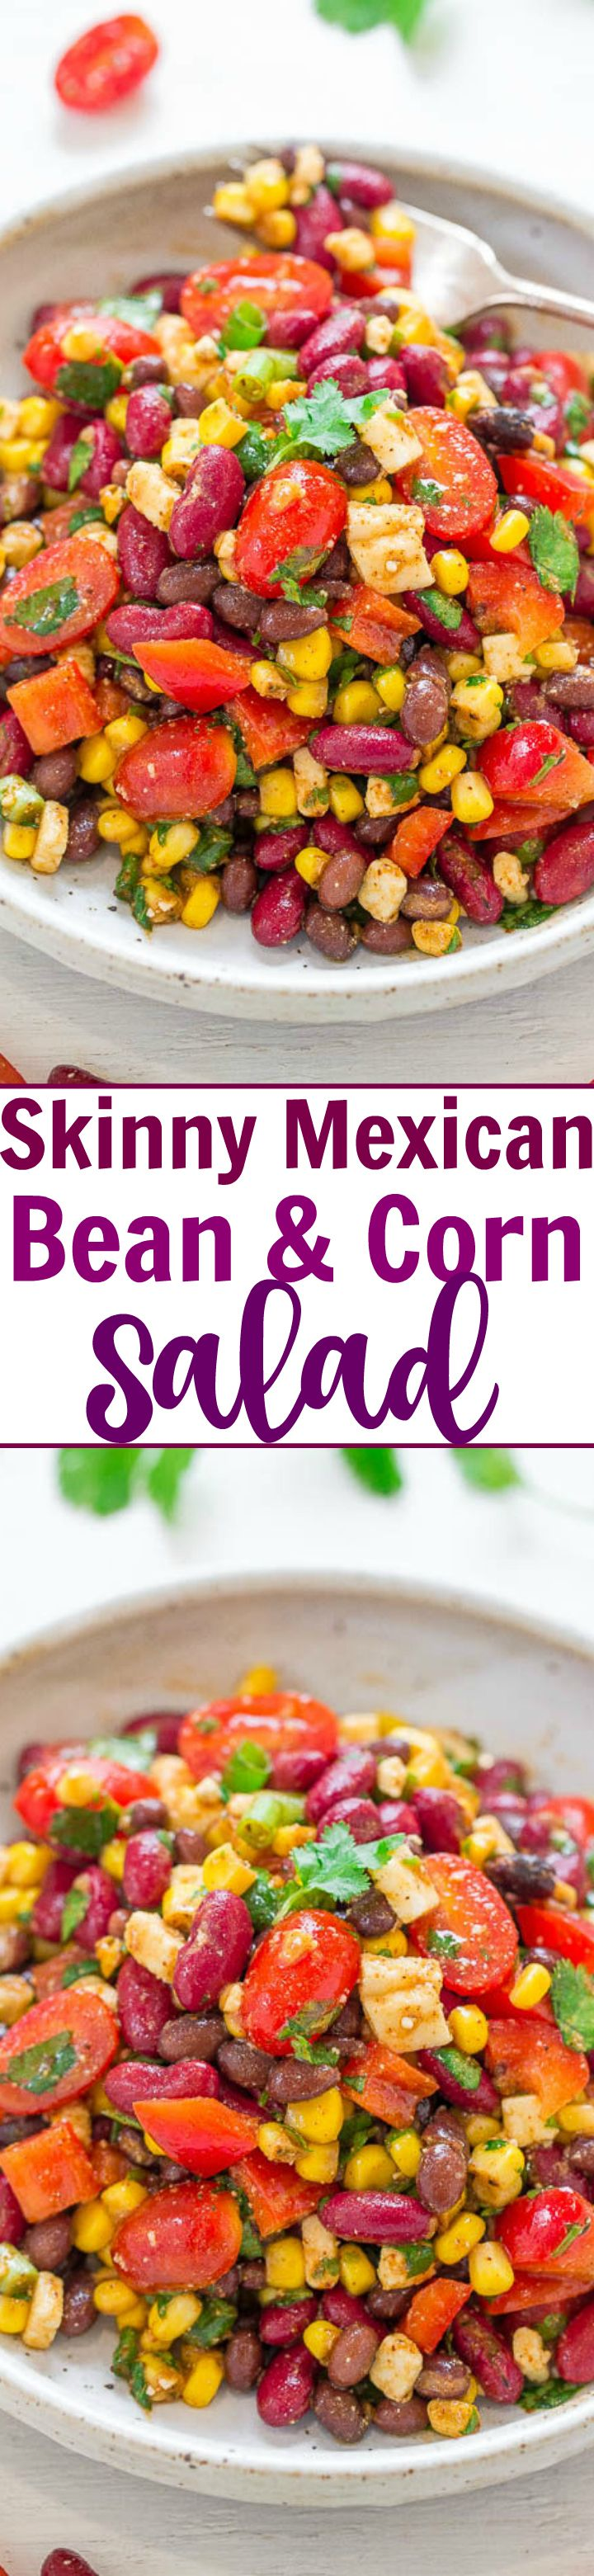 Skinny Mexican Bean and Corn Salad - Two kinds of beans, juicy corn, tomatoes, peppers, and more tossed in a light chili-lime-cumin vinaigrette!! HEALTHY, EASY, ready in 5 minutes, and loaded with flavor!!